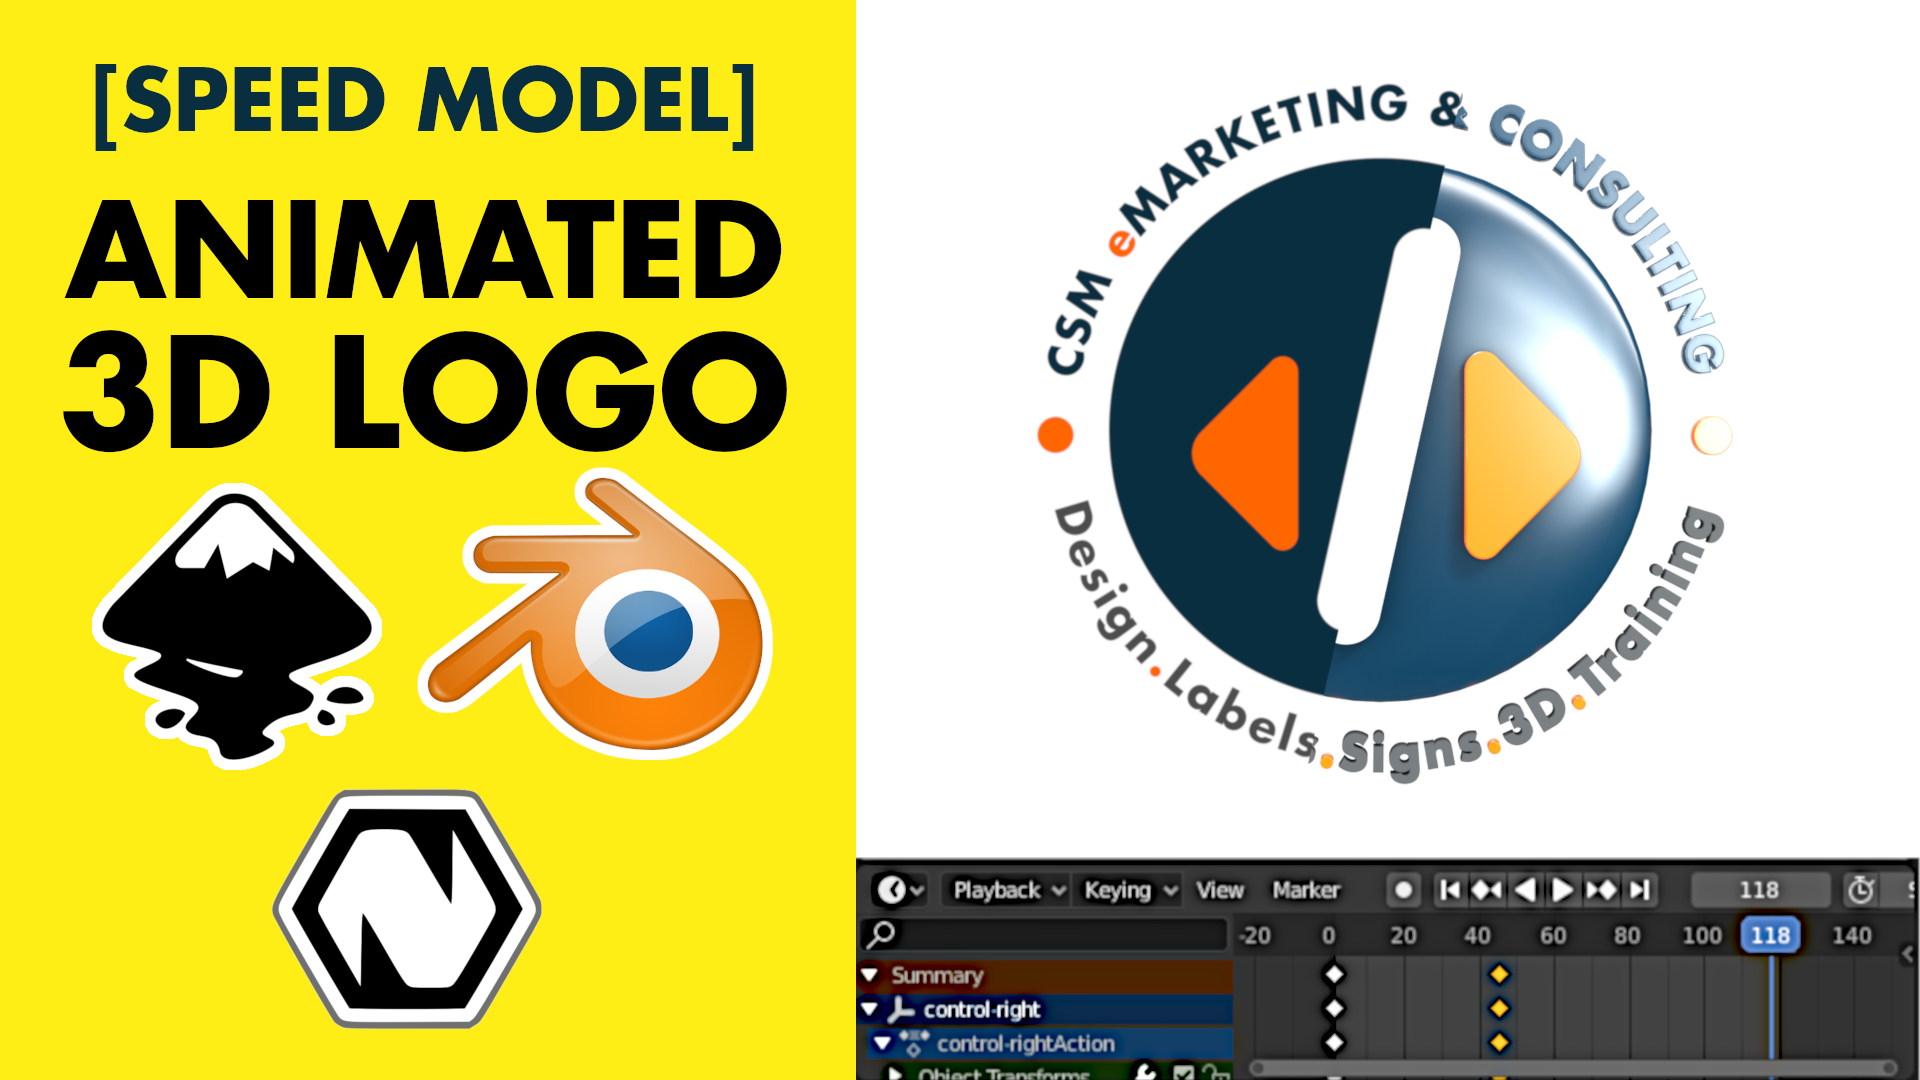 csm-yt-blender-convert-logo-to-3d-and-animate.png